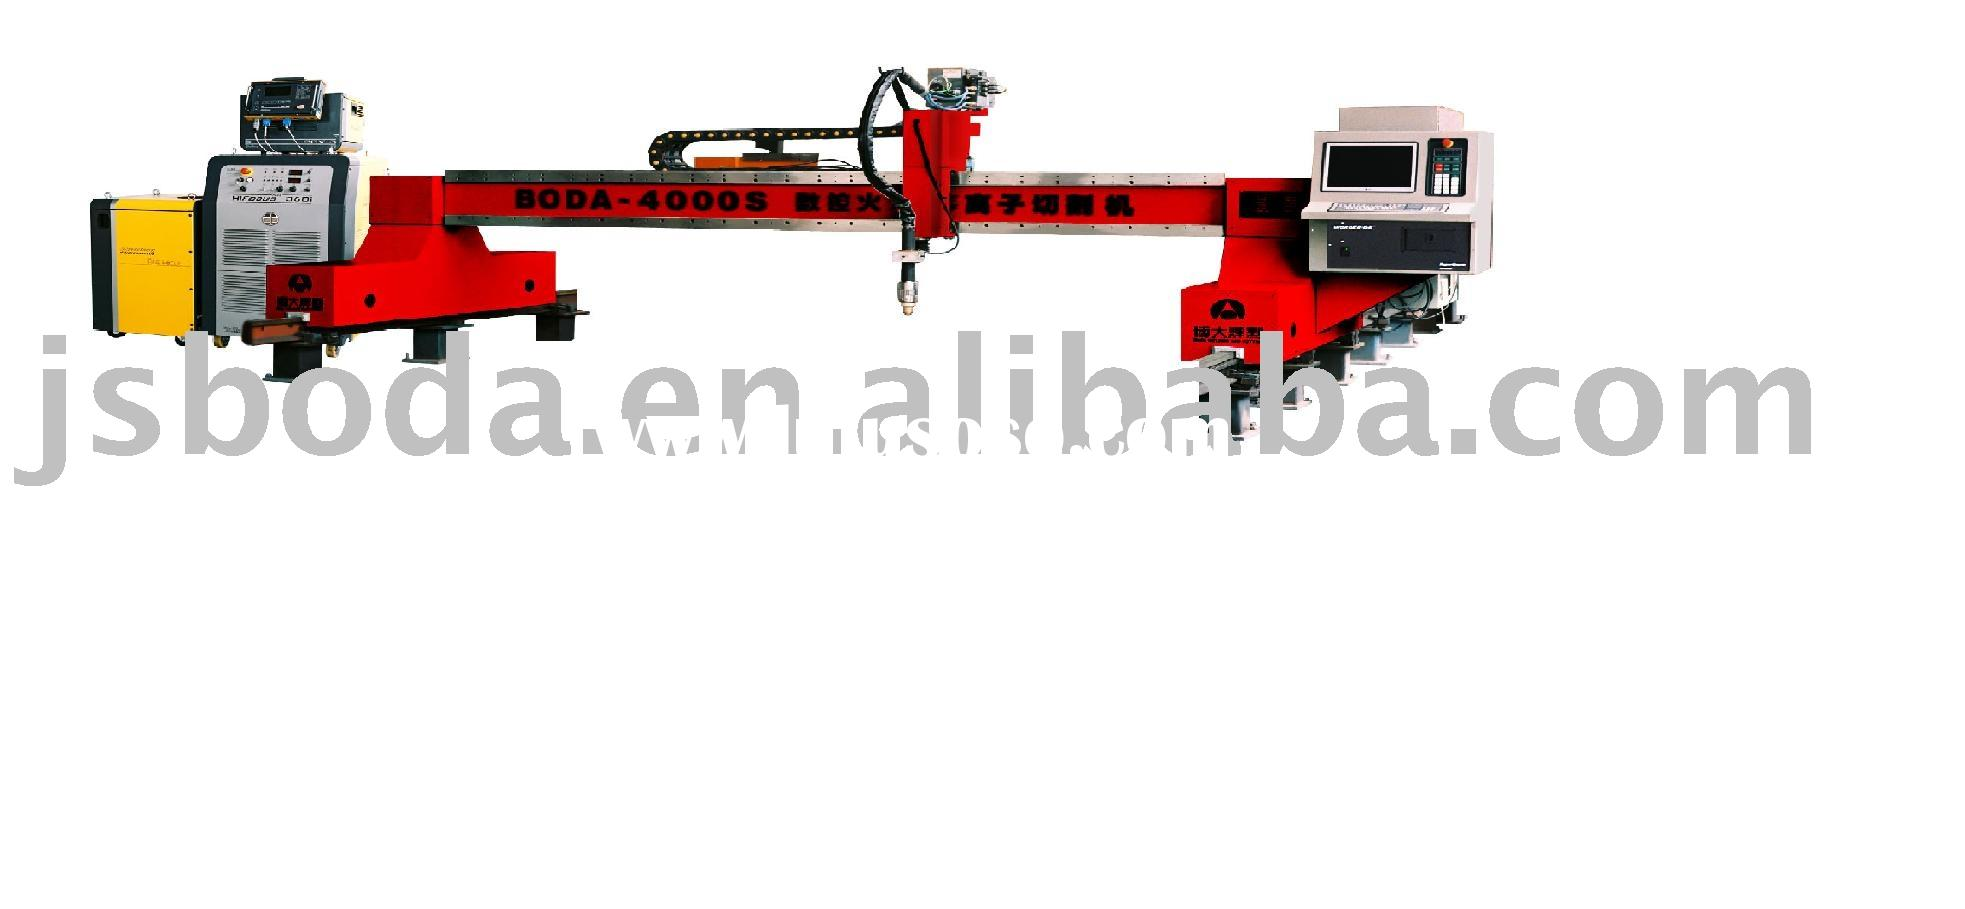 BODA CNC Plasma Cutting Machine